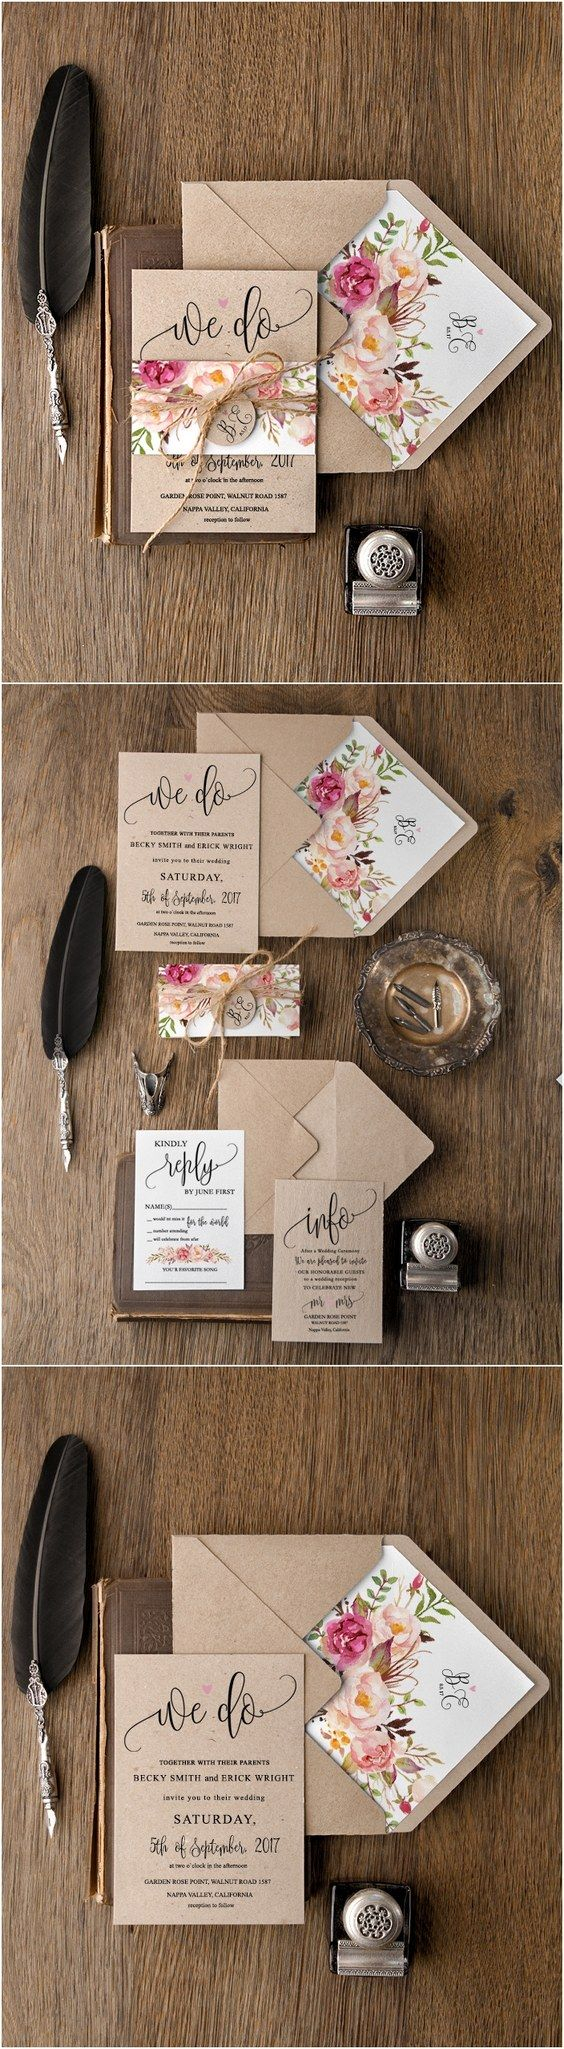 Country Wedding Invitations Cheap 30 Our Absolutely Favorite Rustic Wedding Invitations Deer Pearl